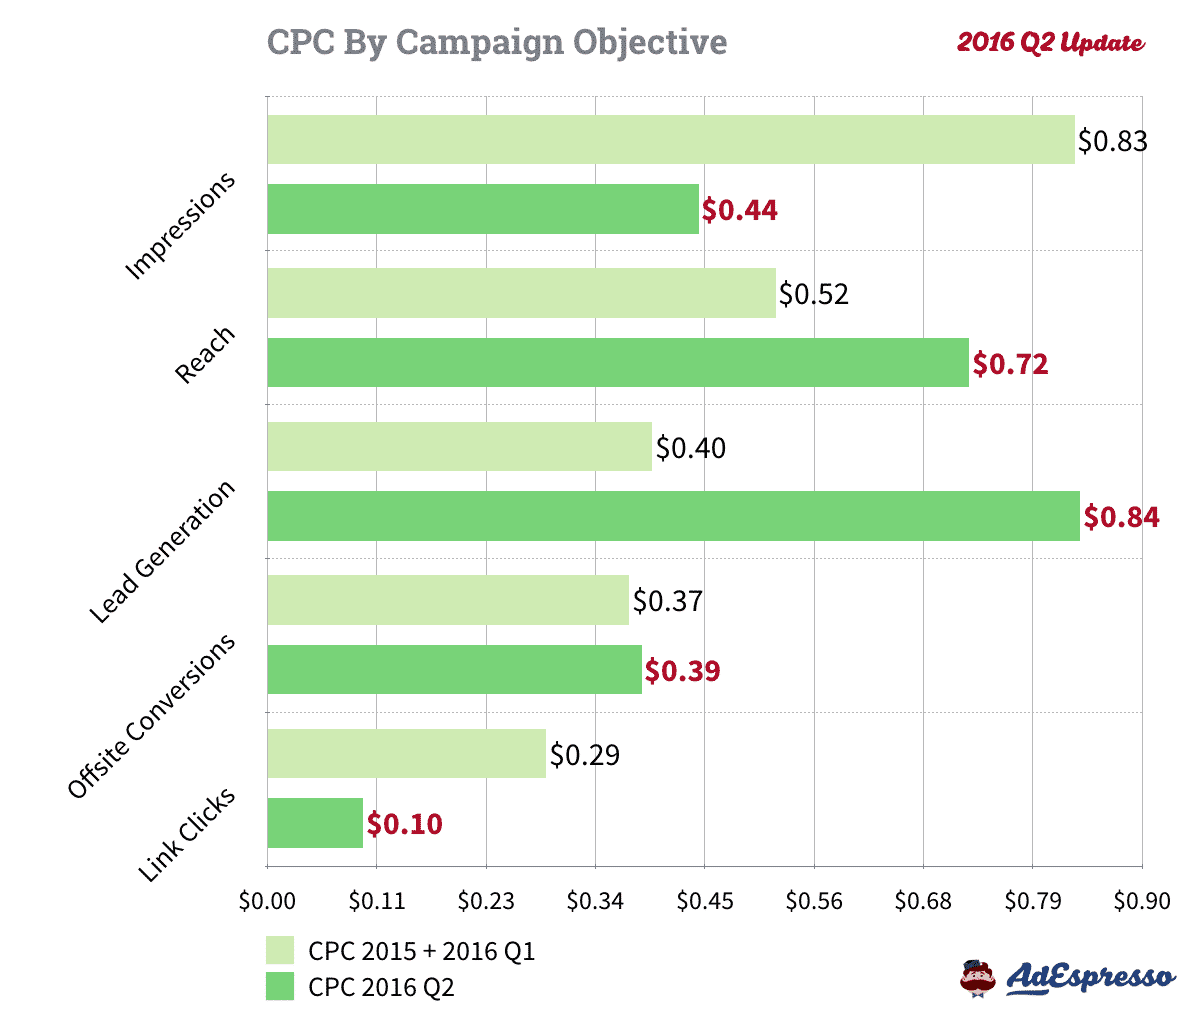 facebook-ads-cost-cpc-objective-2016-q2-004